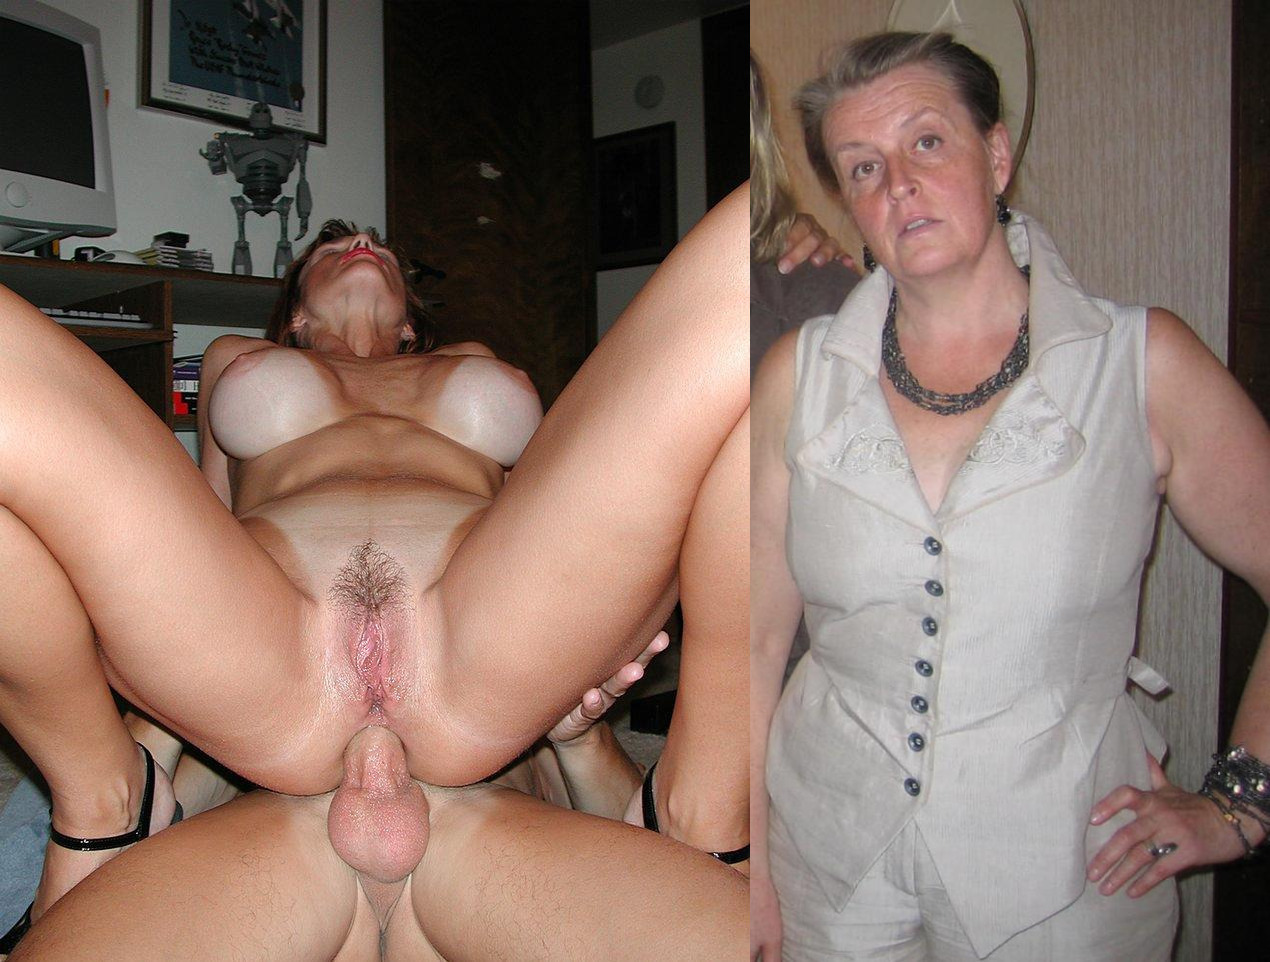 Classy slutty milf loves jizz in her mouth 10